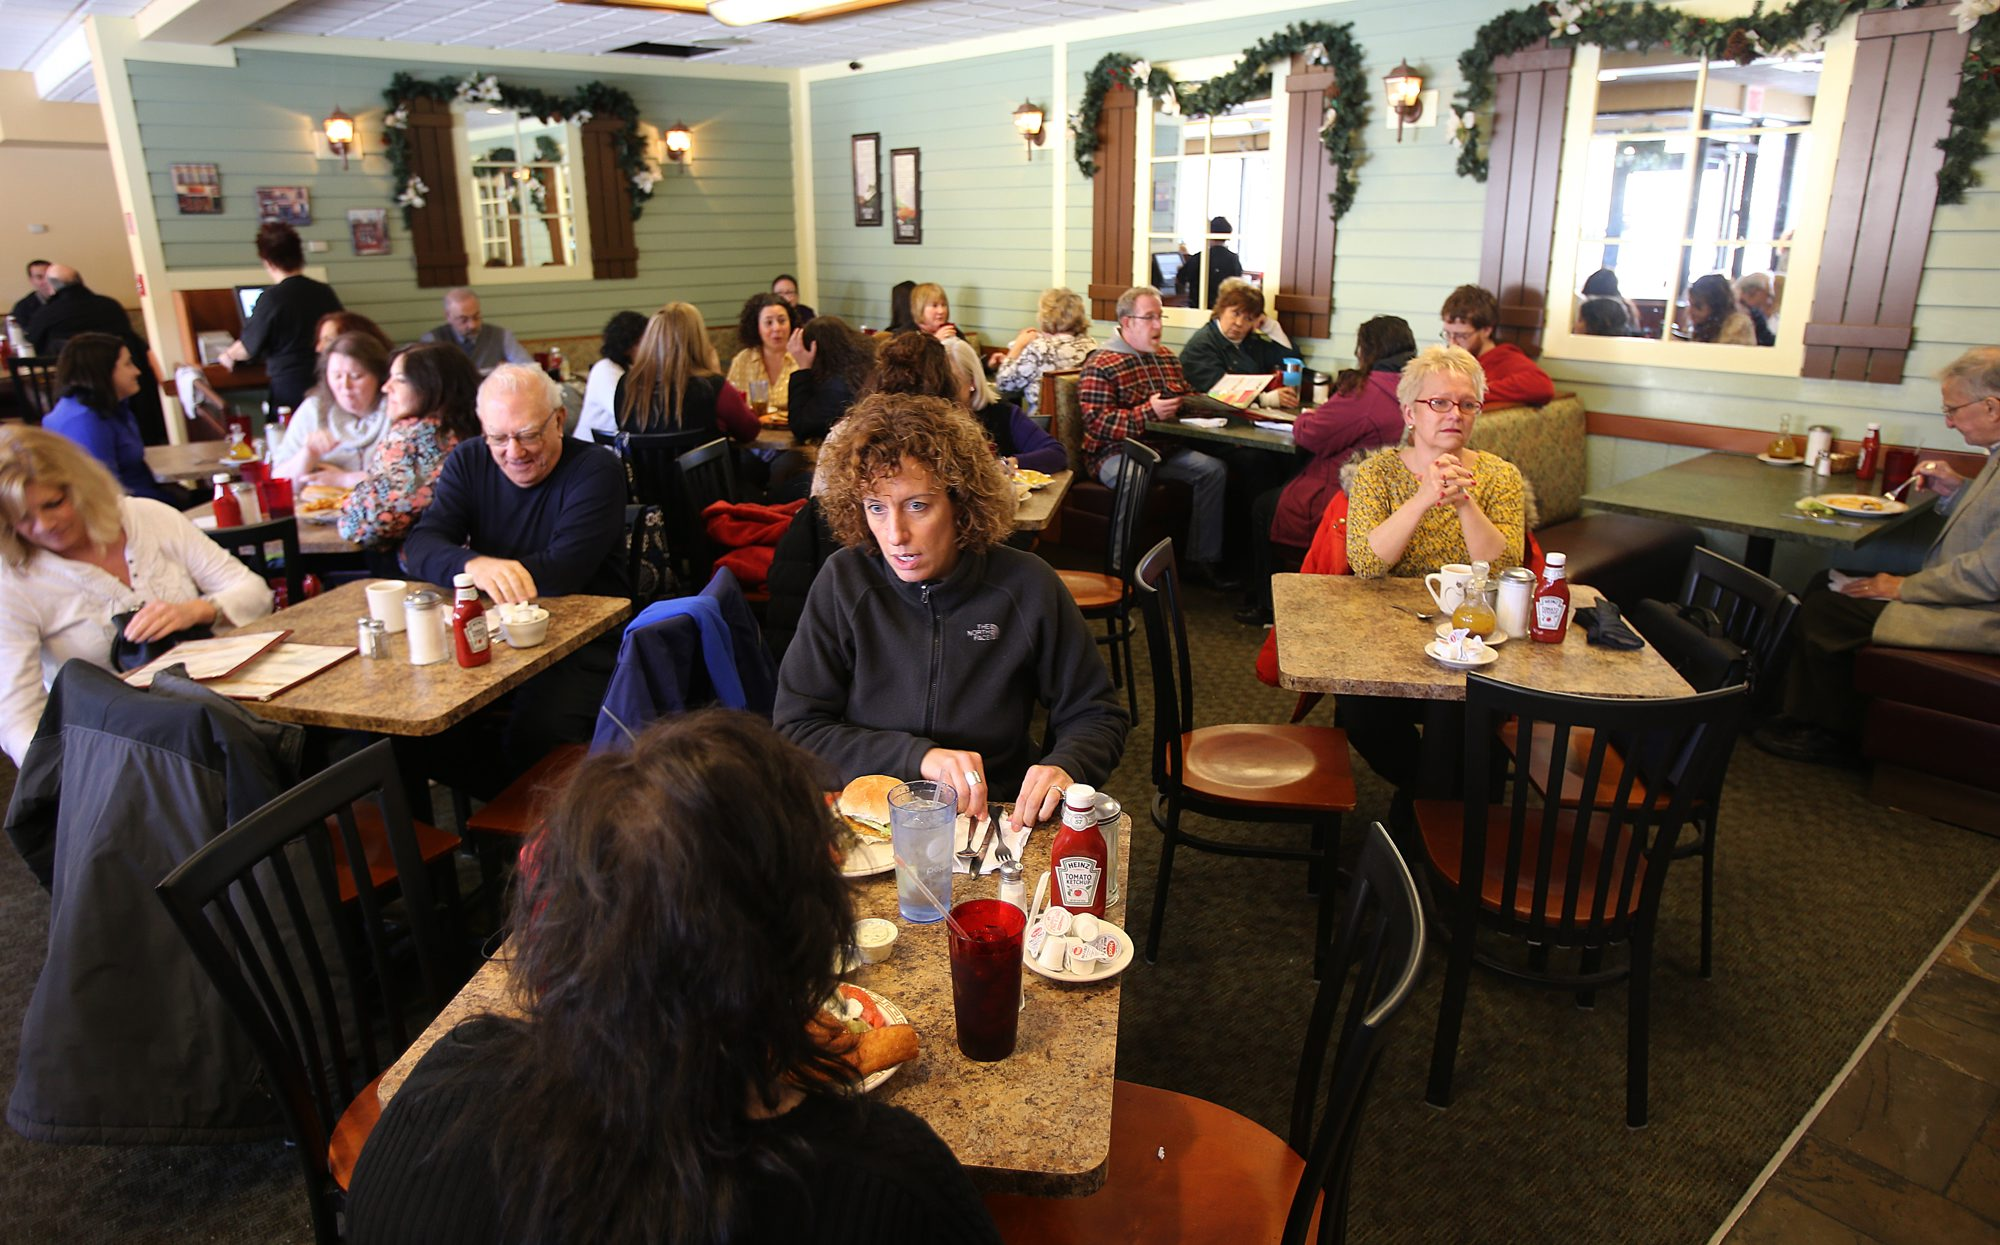 The Courtyard Restaurant, 127 Franklin St., is adding weekend service. (Buffalo News file photo)